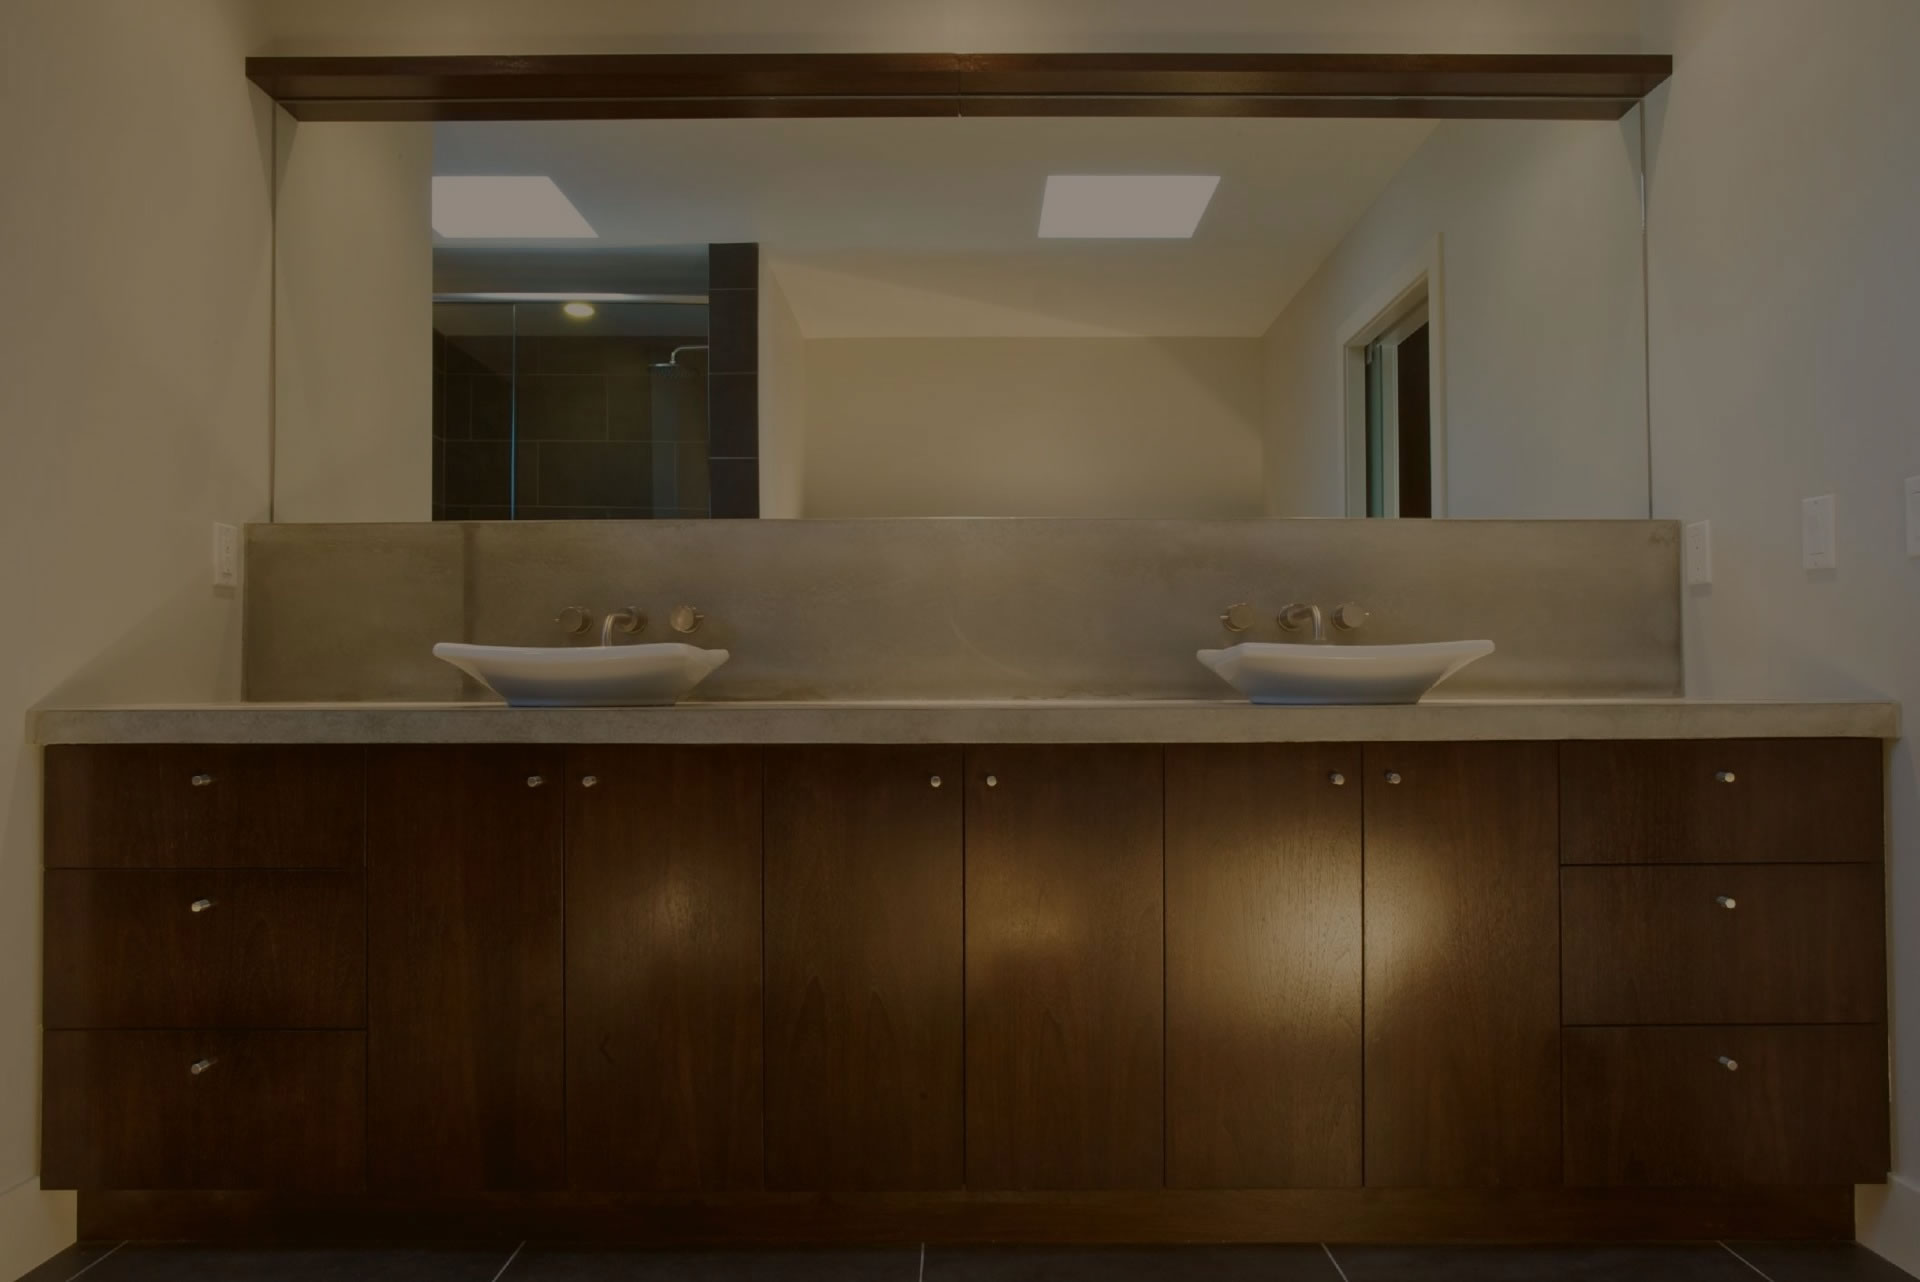 Modern custom bathroom cabinets made by Evolve Kitchens